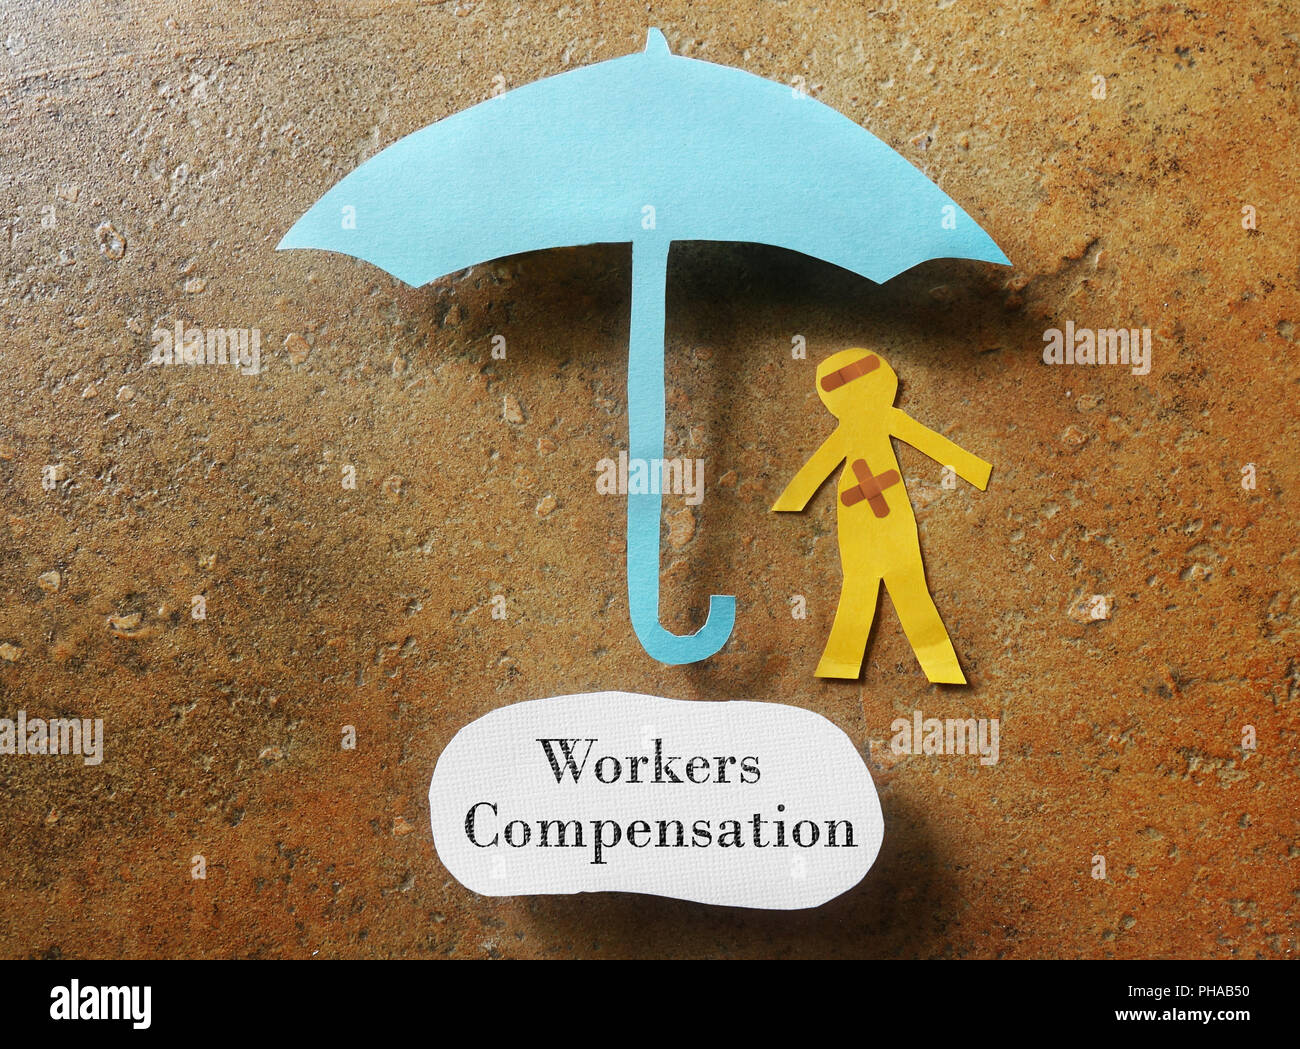 Workers Compensation concept - Stock Image